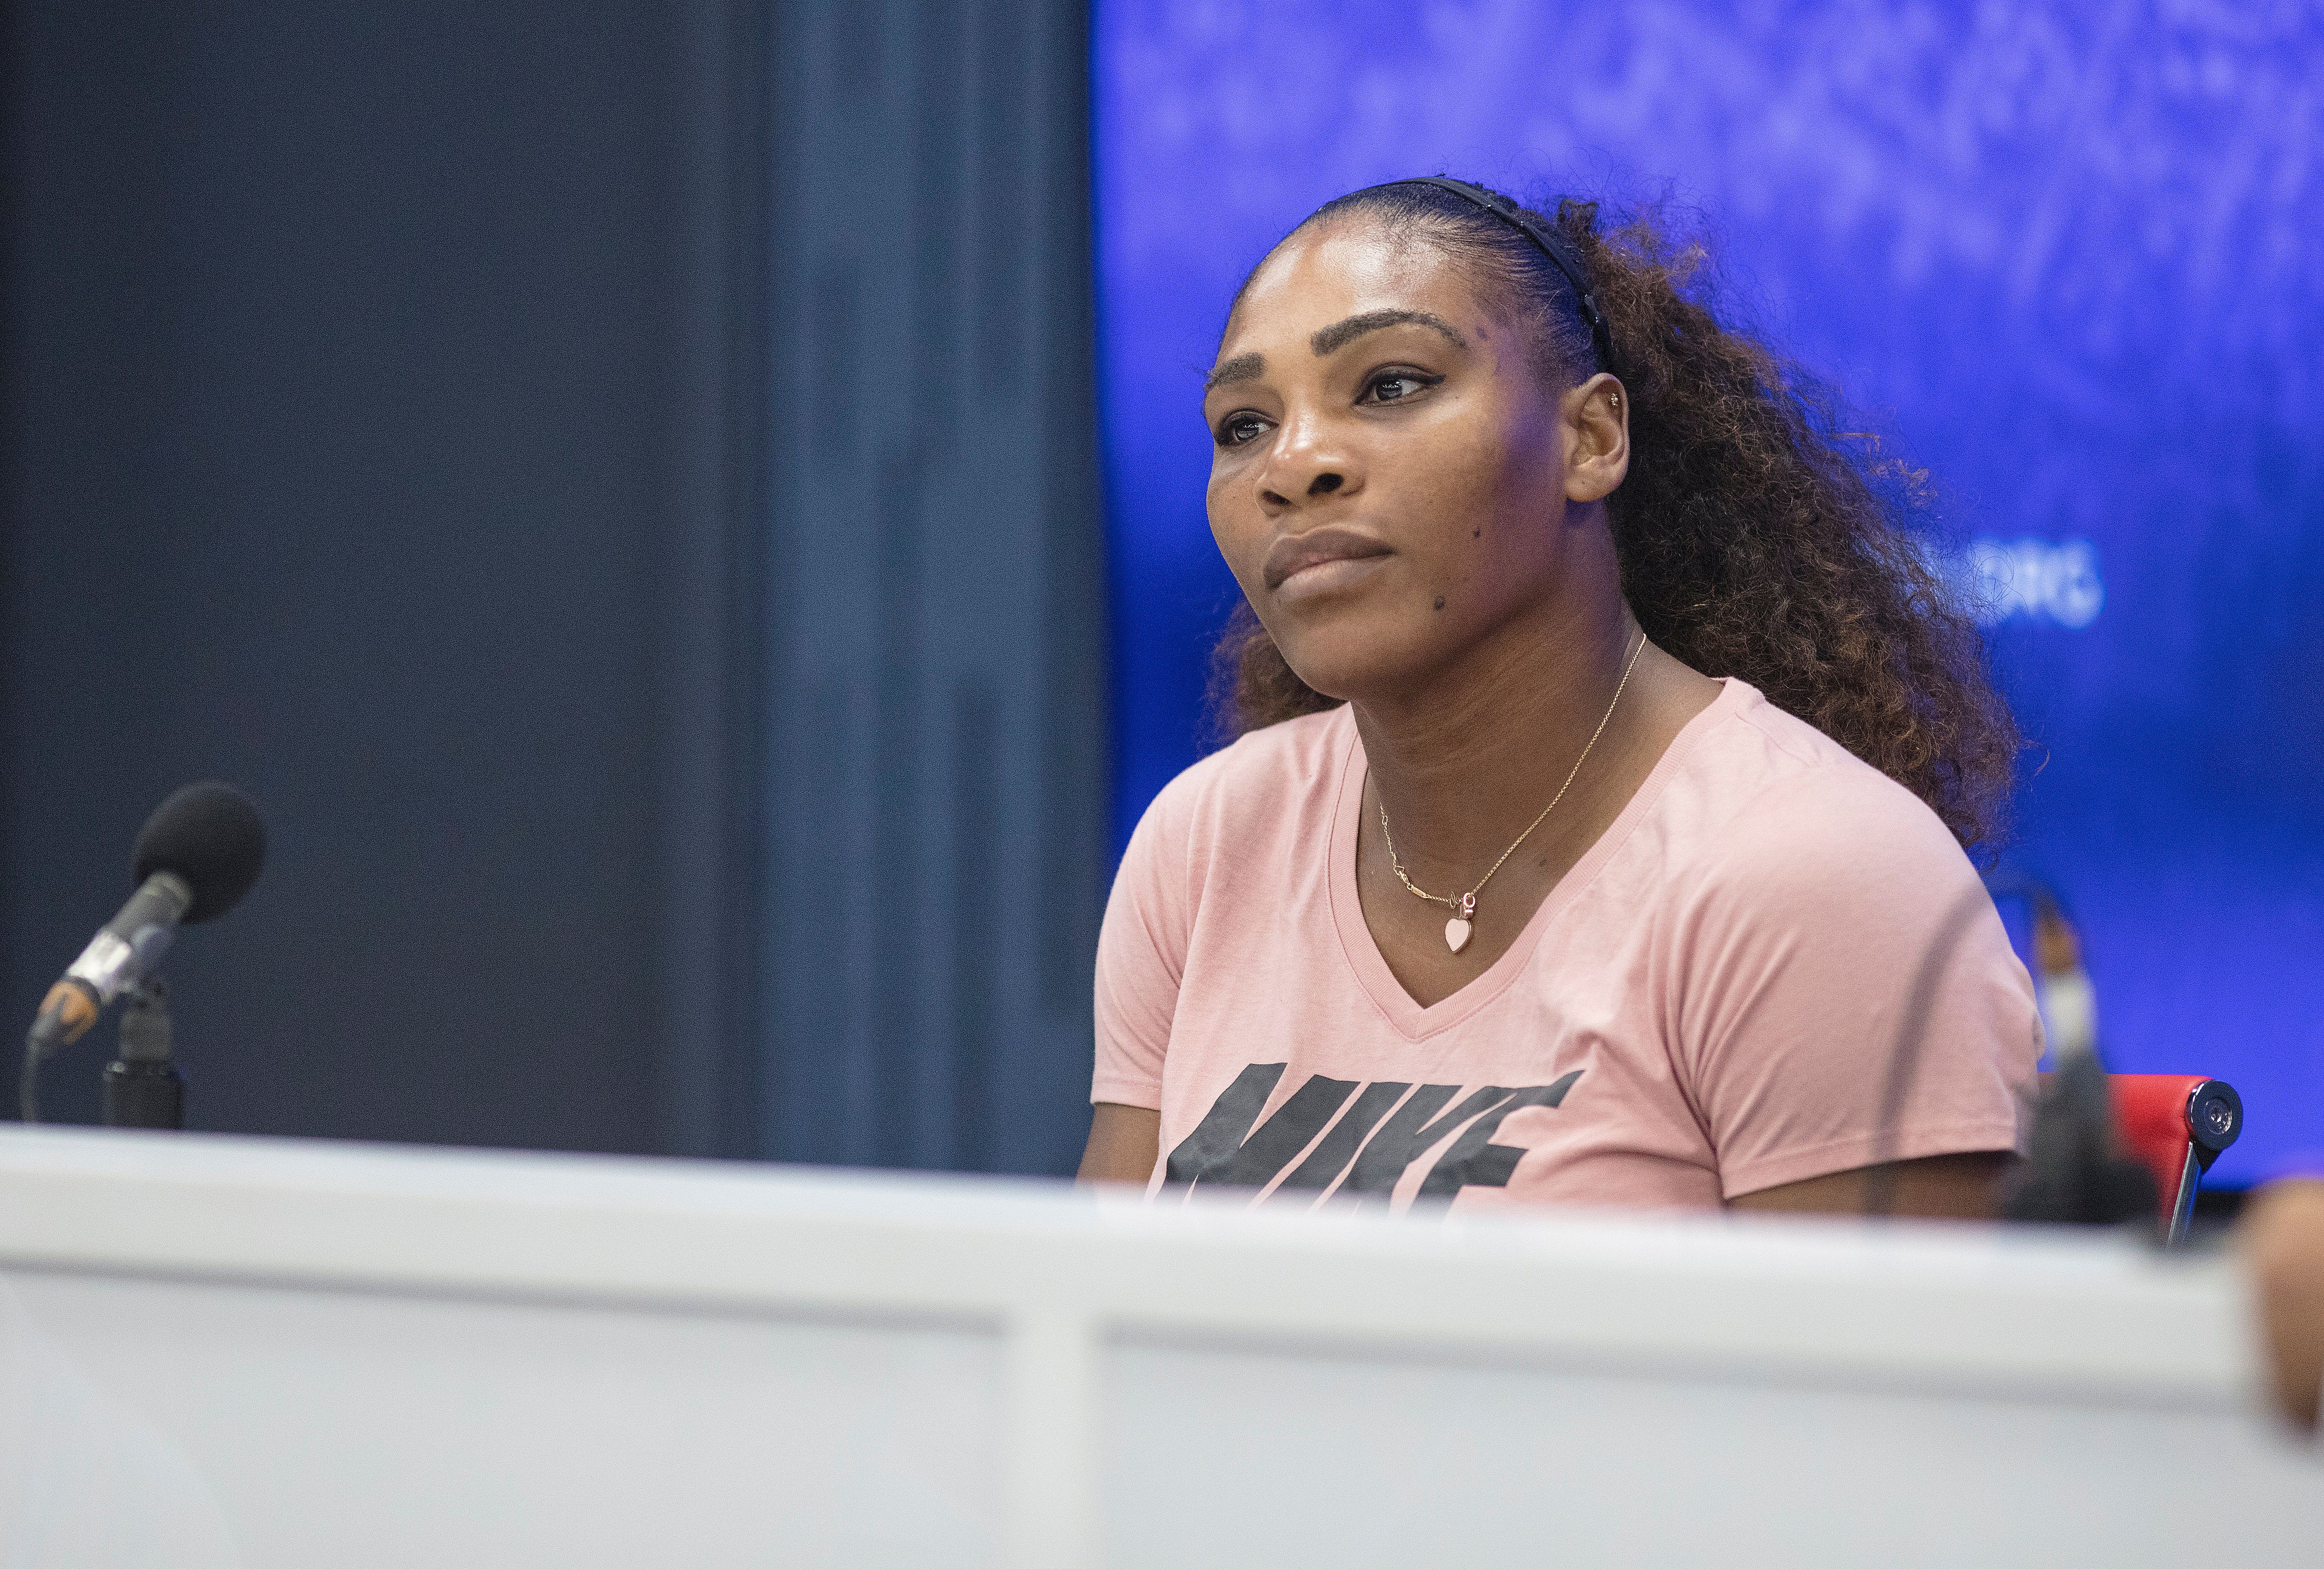 2018 US Open Tennis Tournament- Day Thirteen.  Serena Williams of the United States at her press conference after her match against Naomi Osaka of Japan in the Women's Singles Final on Arthur Ashe Stadium at the 2018 US Open Tennis Tournament at the USTA Billie Jean King National Tennis Center on September 8th, 2018 in Flushing, Queens, New York City.  (Photo by Tim Clayton/Corbis via Getty Images)